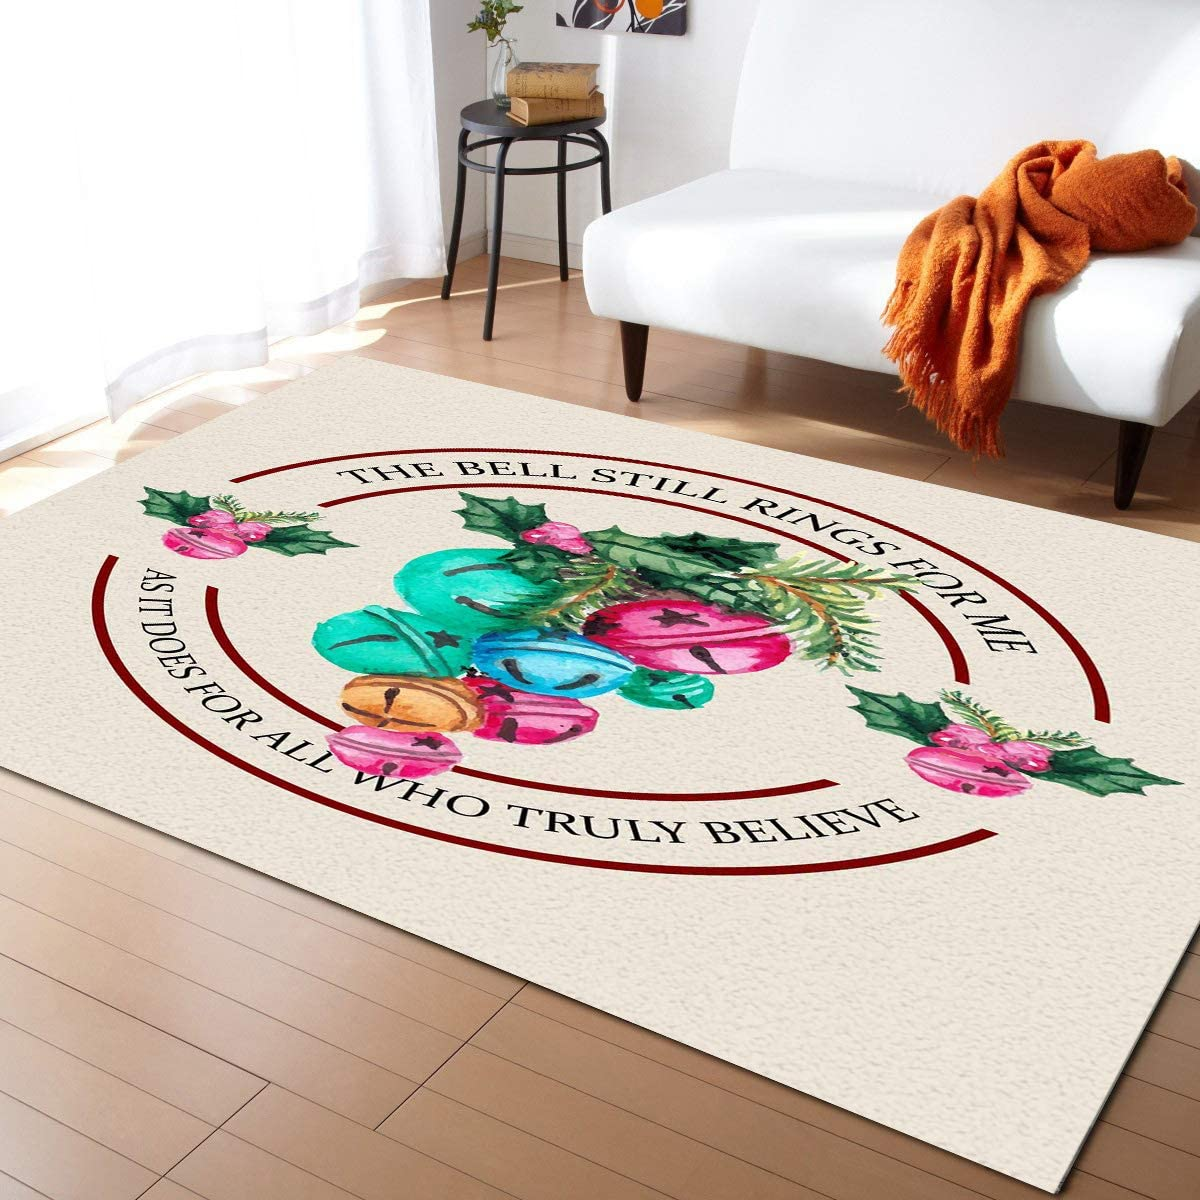 Aomike Indoor Area Outlet gift SALE Rug Doormat- Bell Christmas Round Decoration